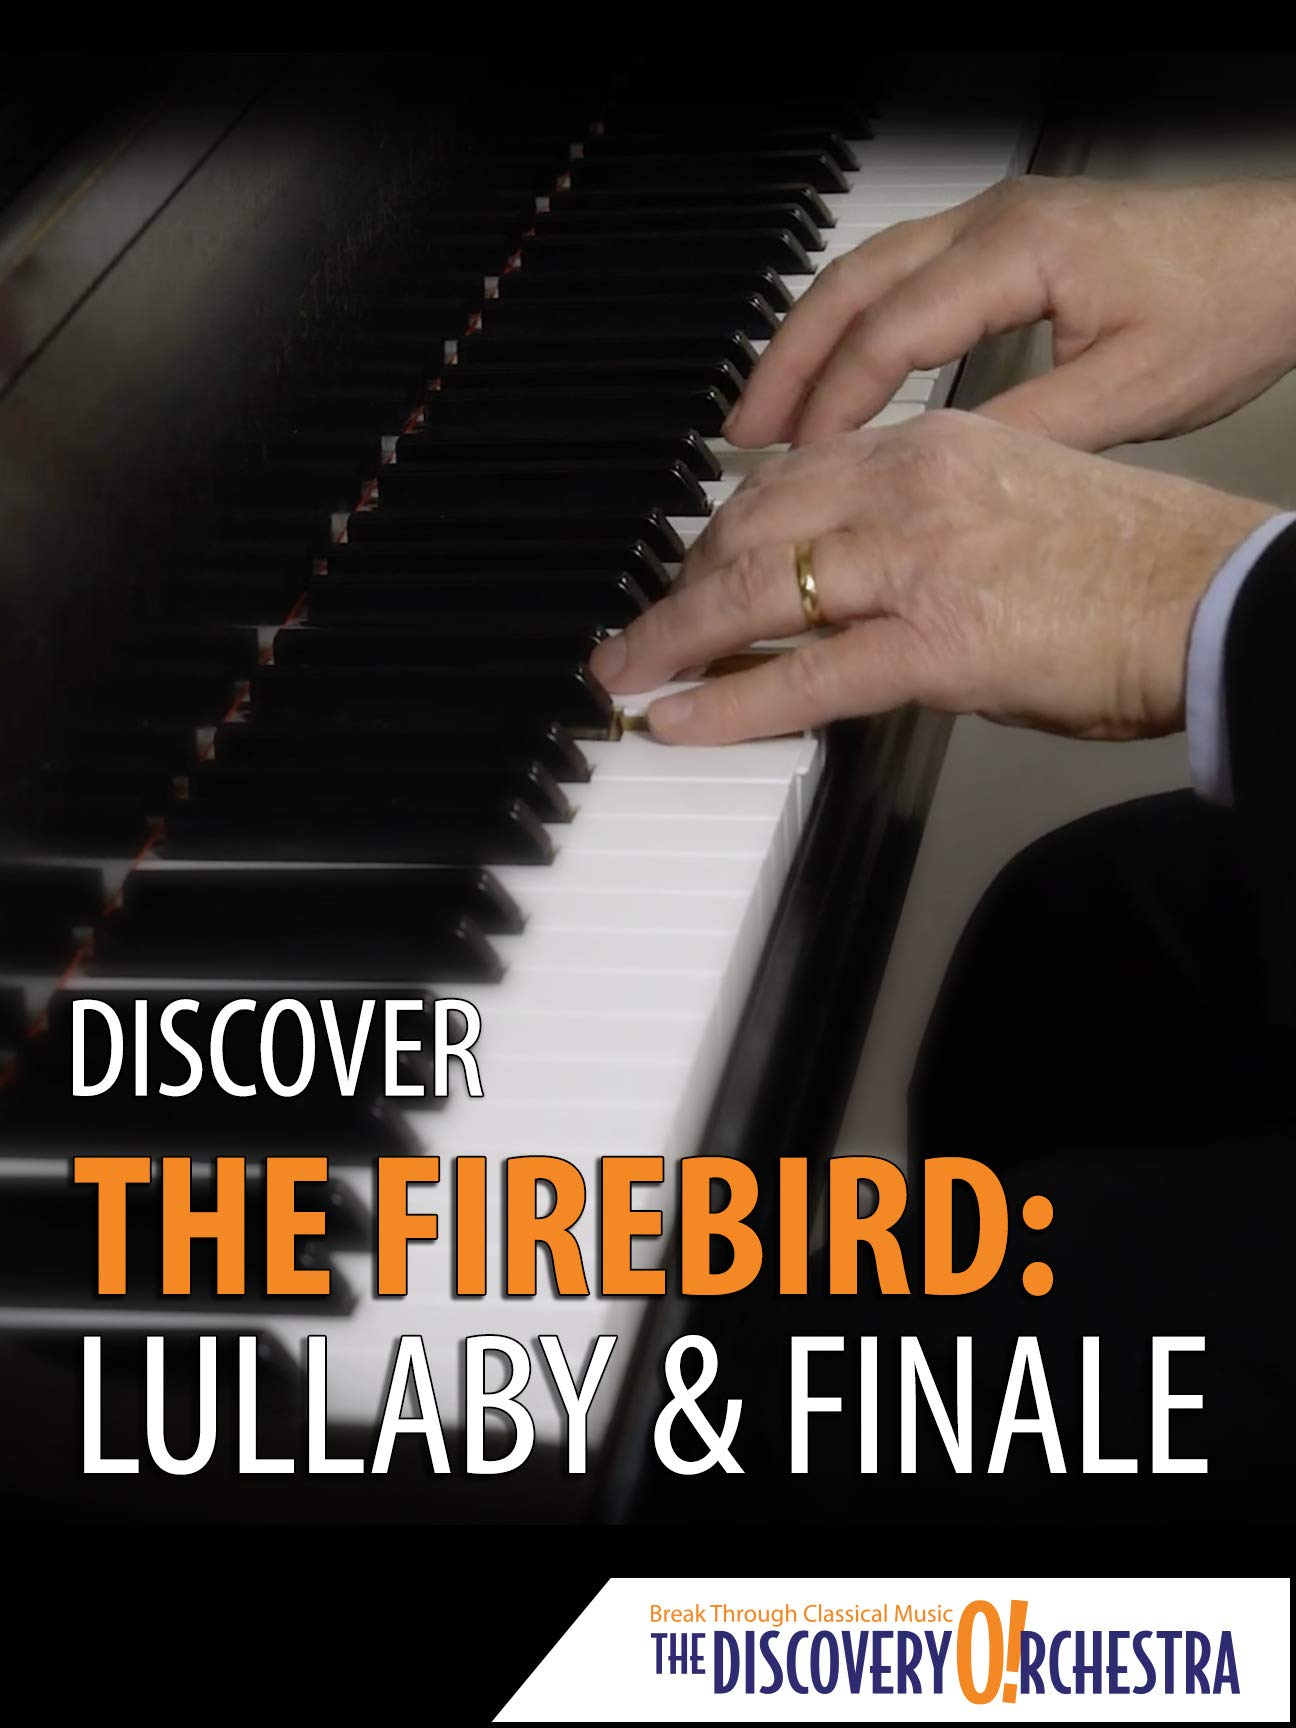 Discover The Firebird: Lullaby & Finale